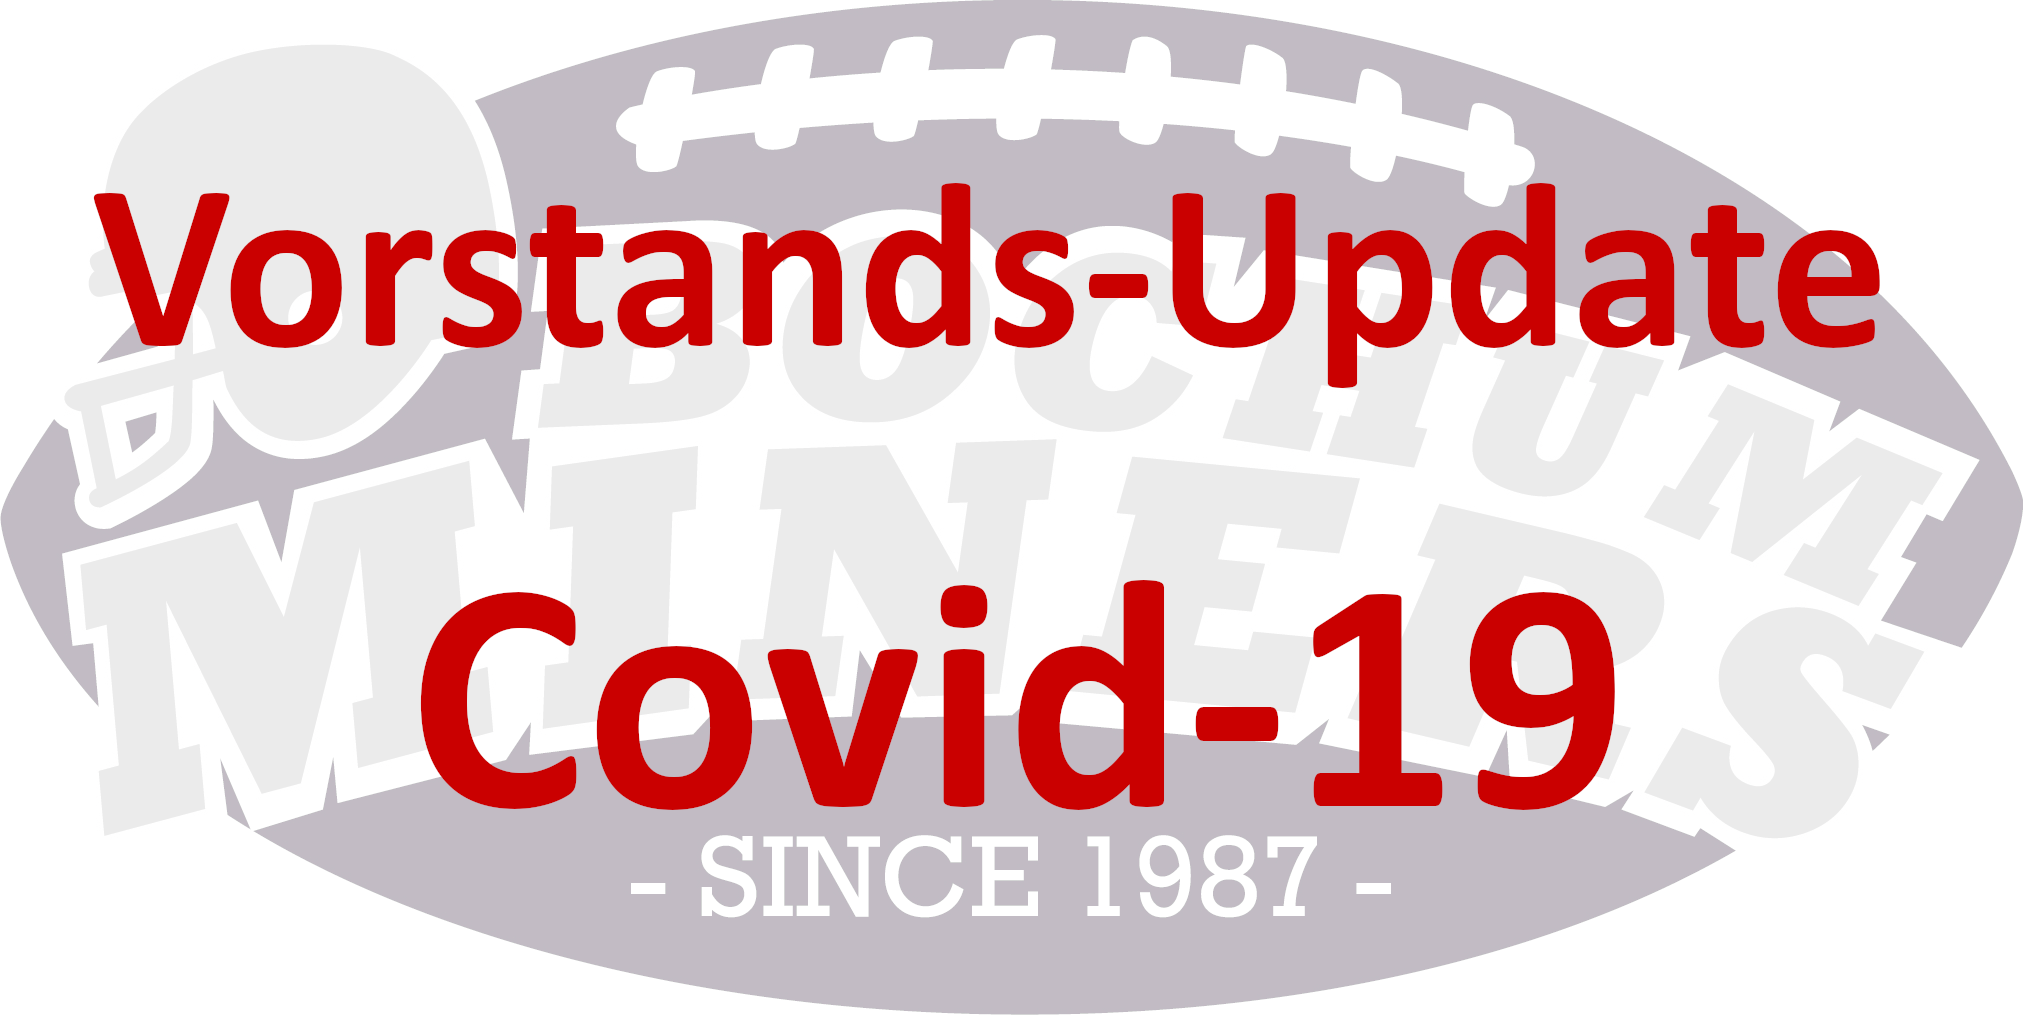 Vorstands Update Covid-19